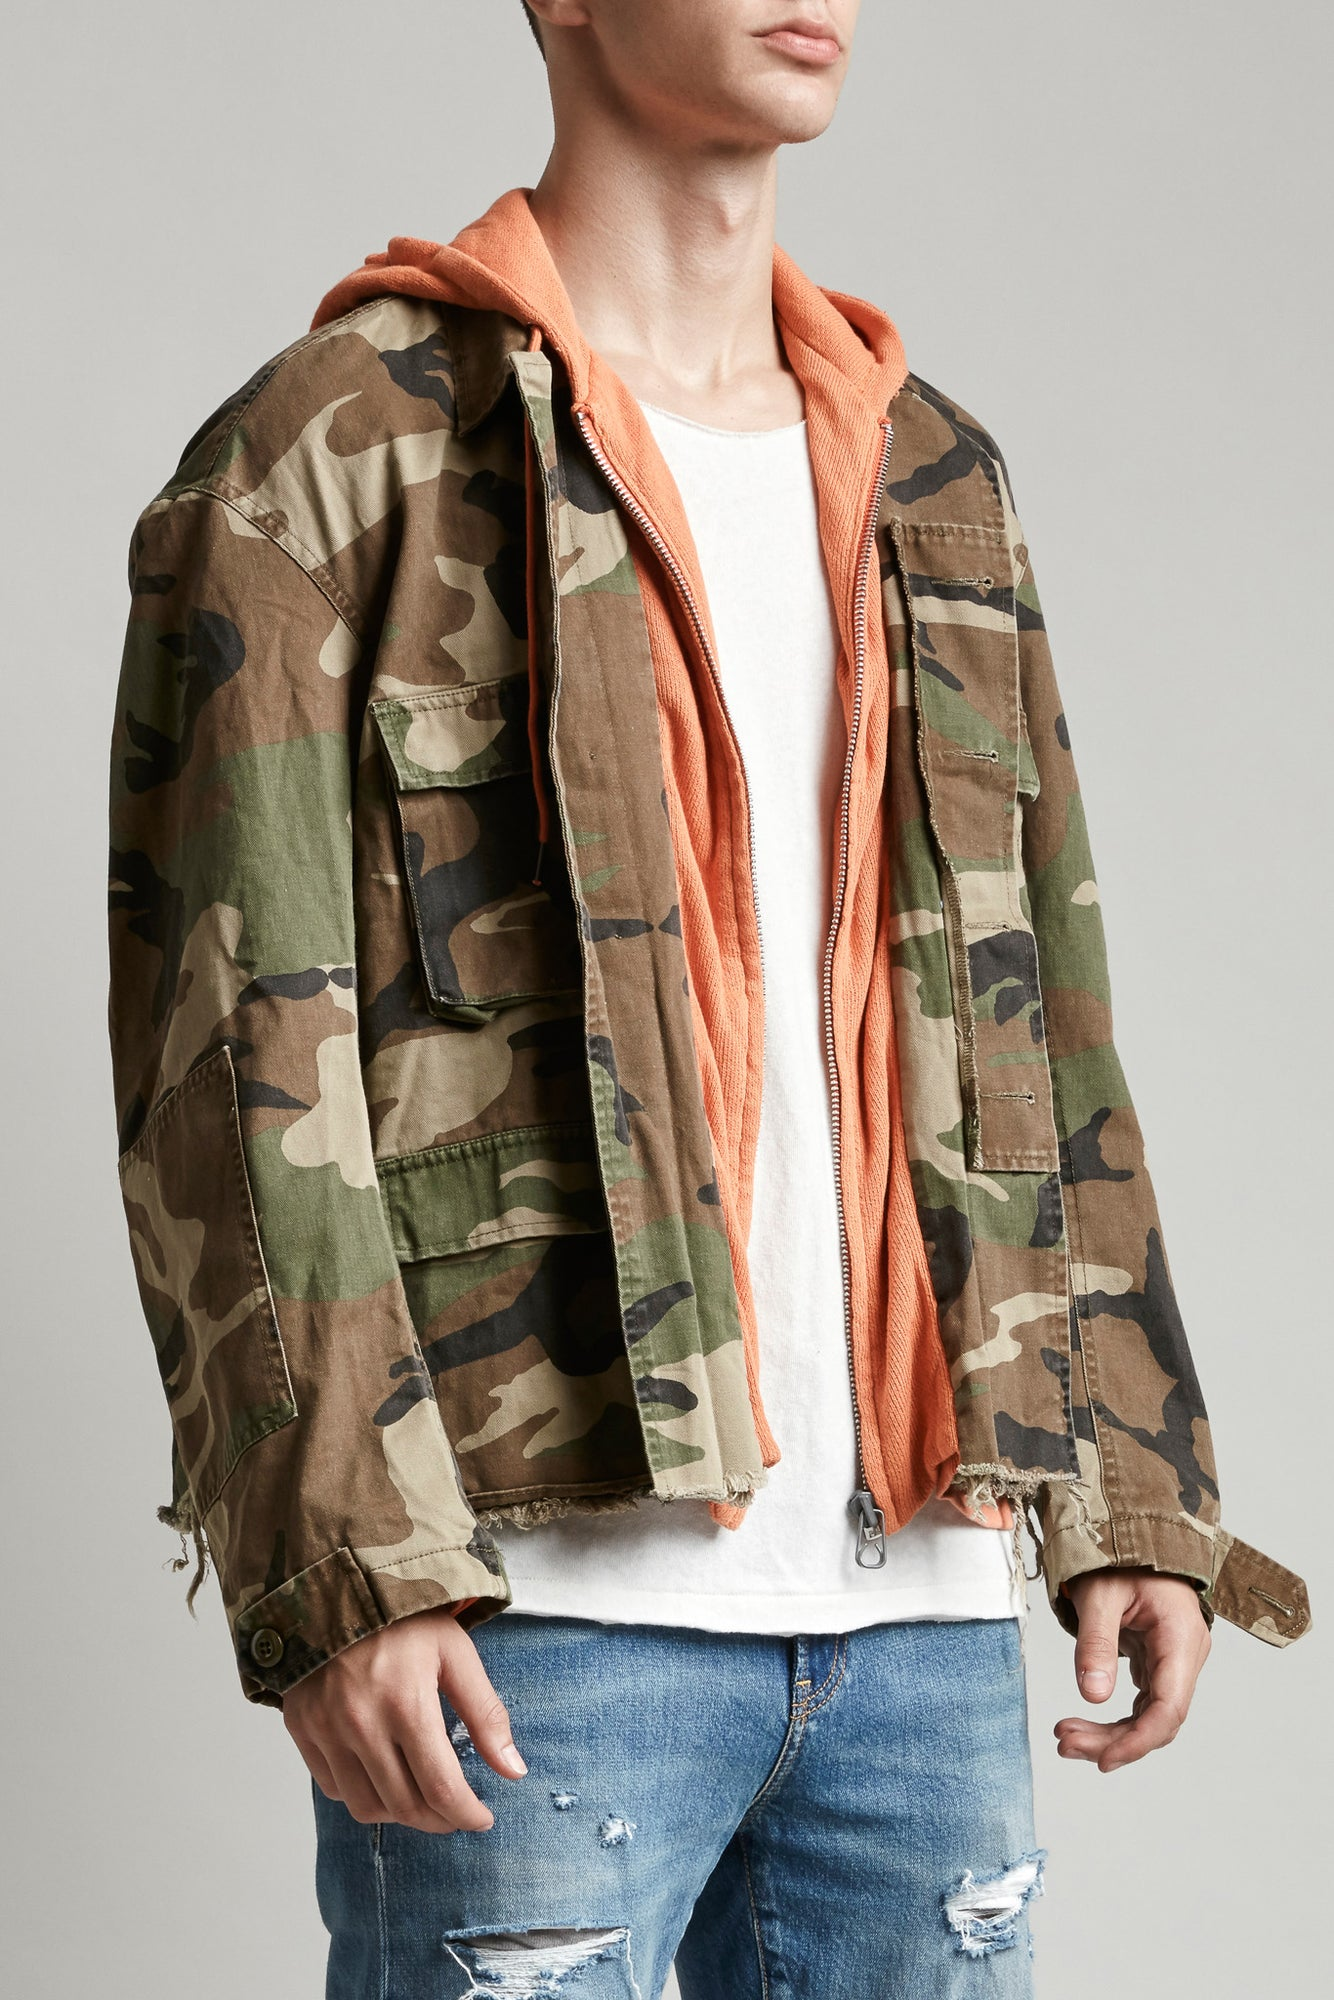 Hooded Abu Jacket - Camo W/ Orange